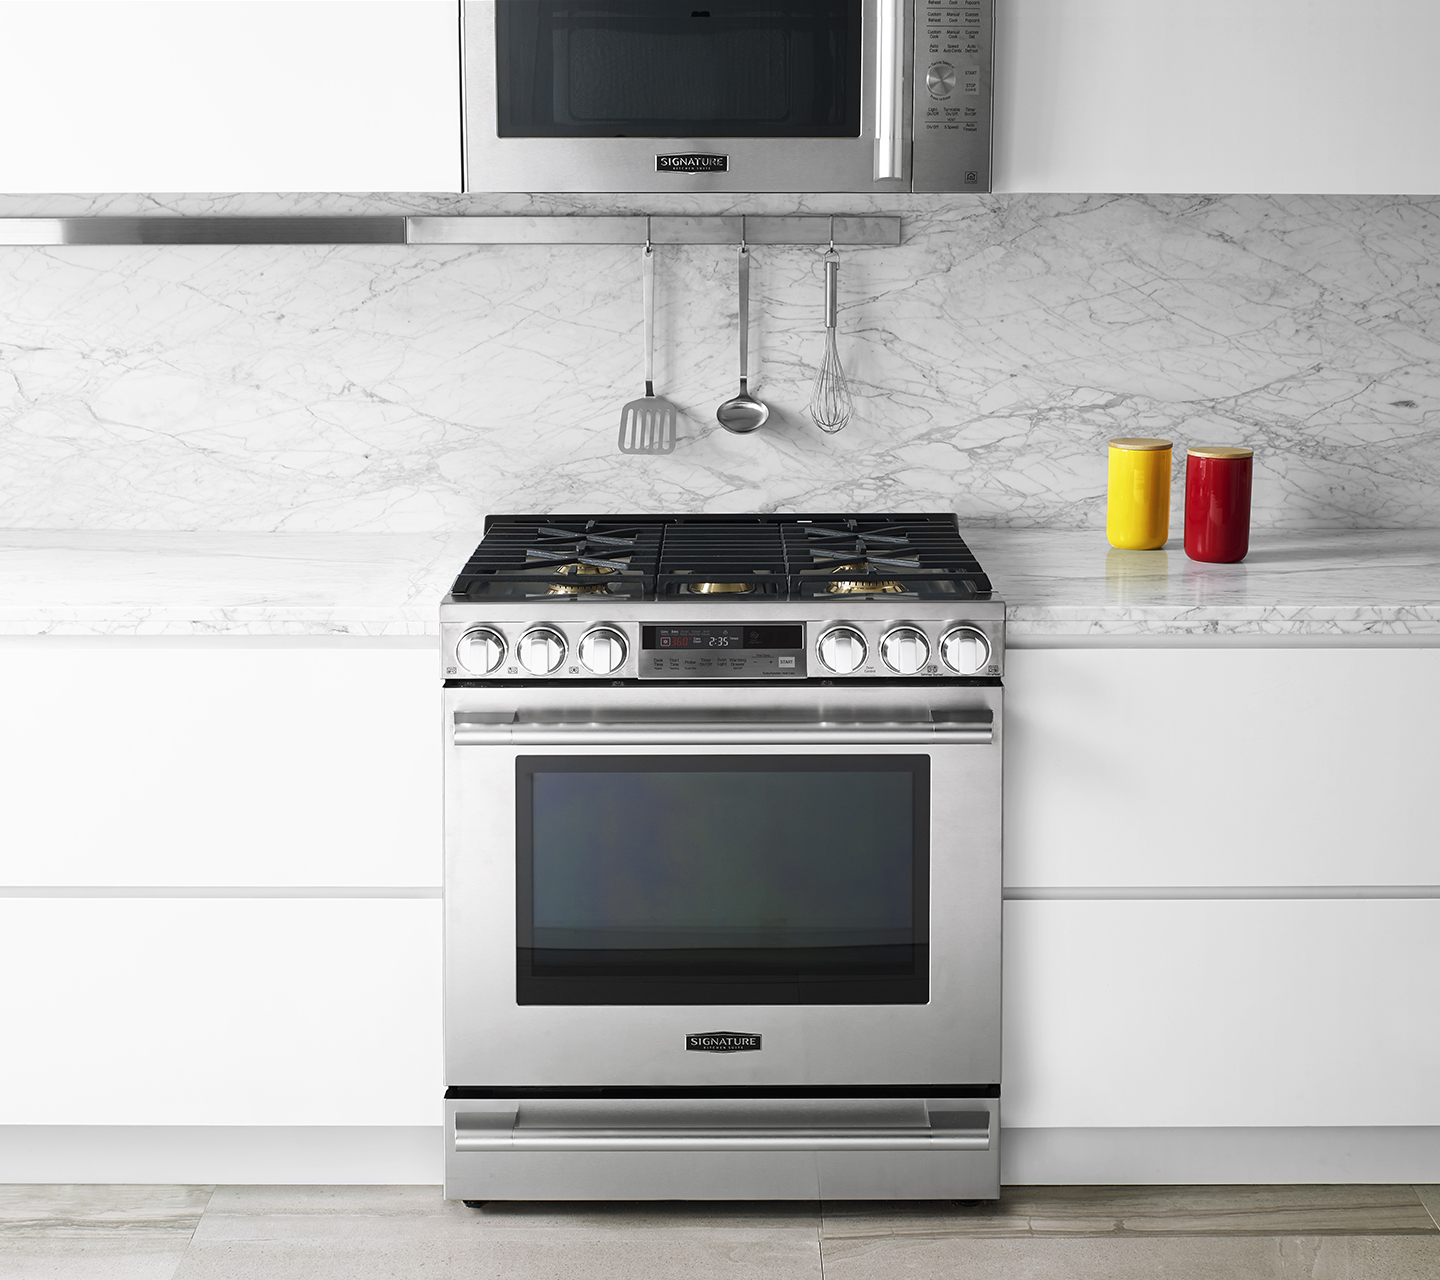 kitchen stove gas commercial floor tile 30 slide in range signature suite inch from